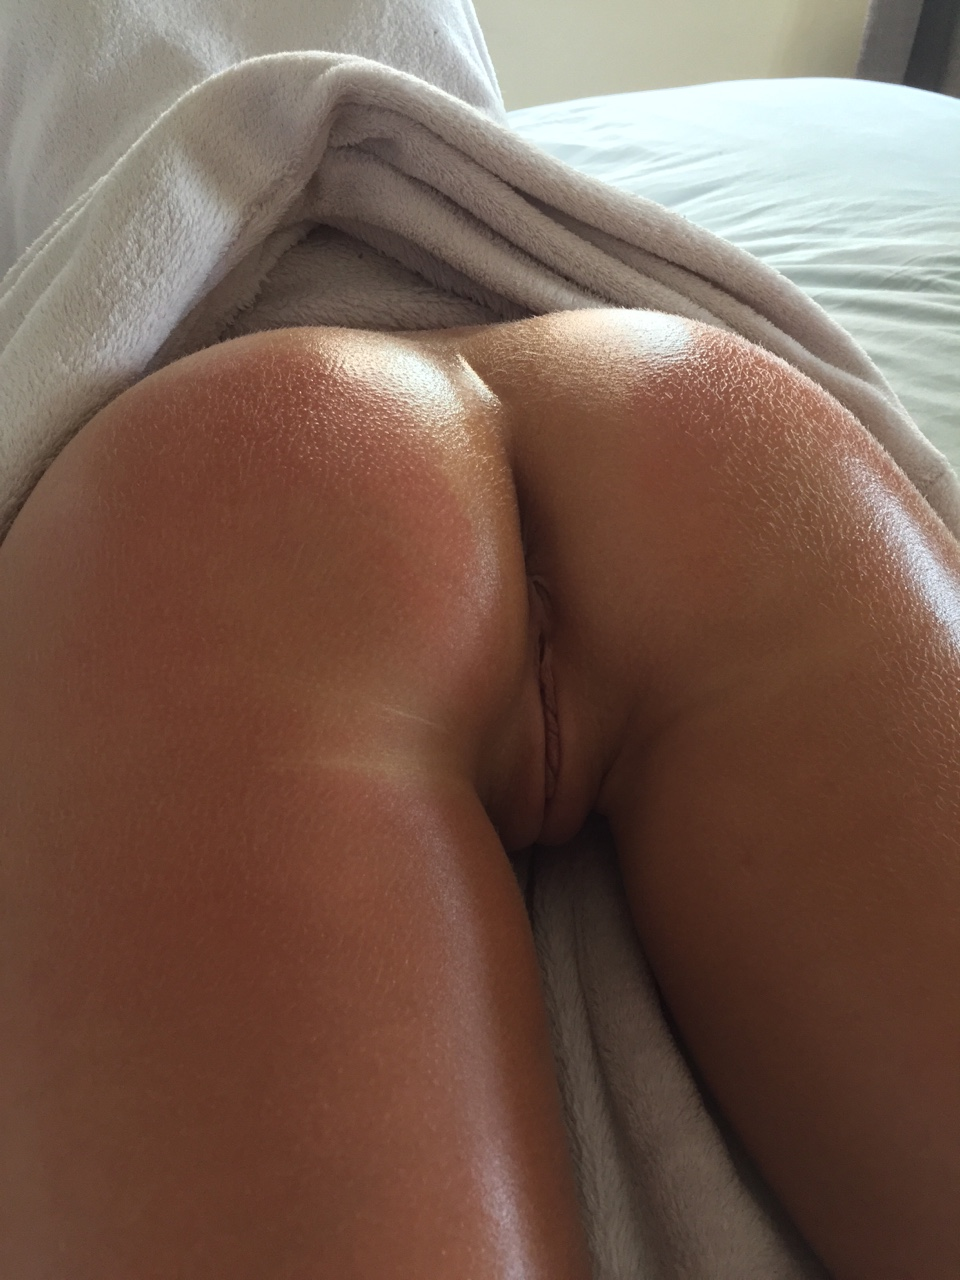 perky tits casting hottest sex videos search watch #ass #asses #booties #booty #butt #butts #fff #pussies #pussy #shaved #smooth #vagina